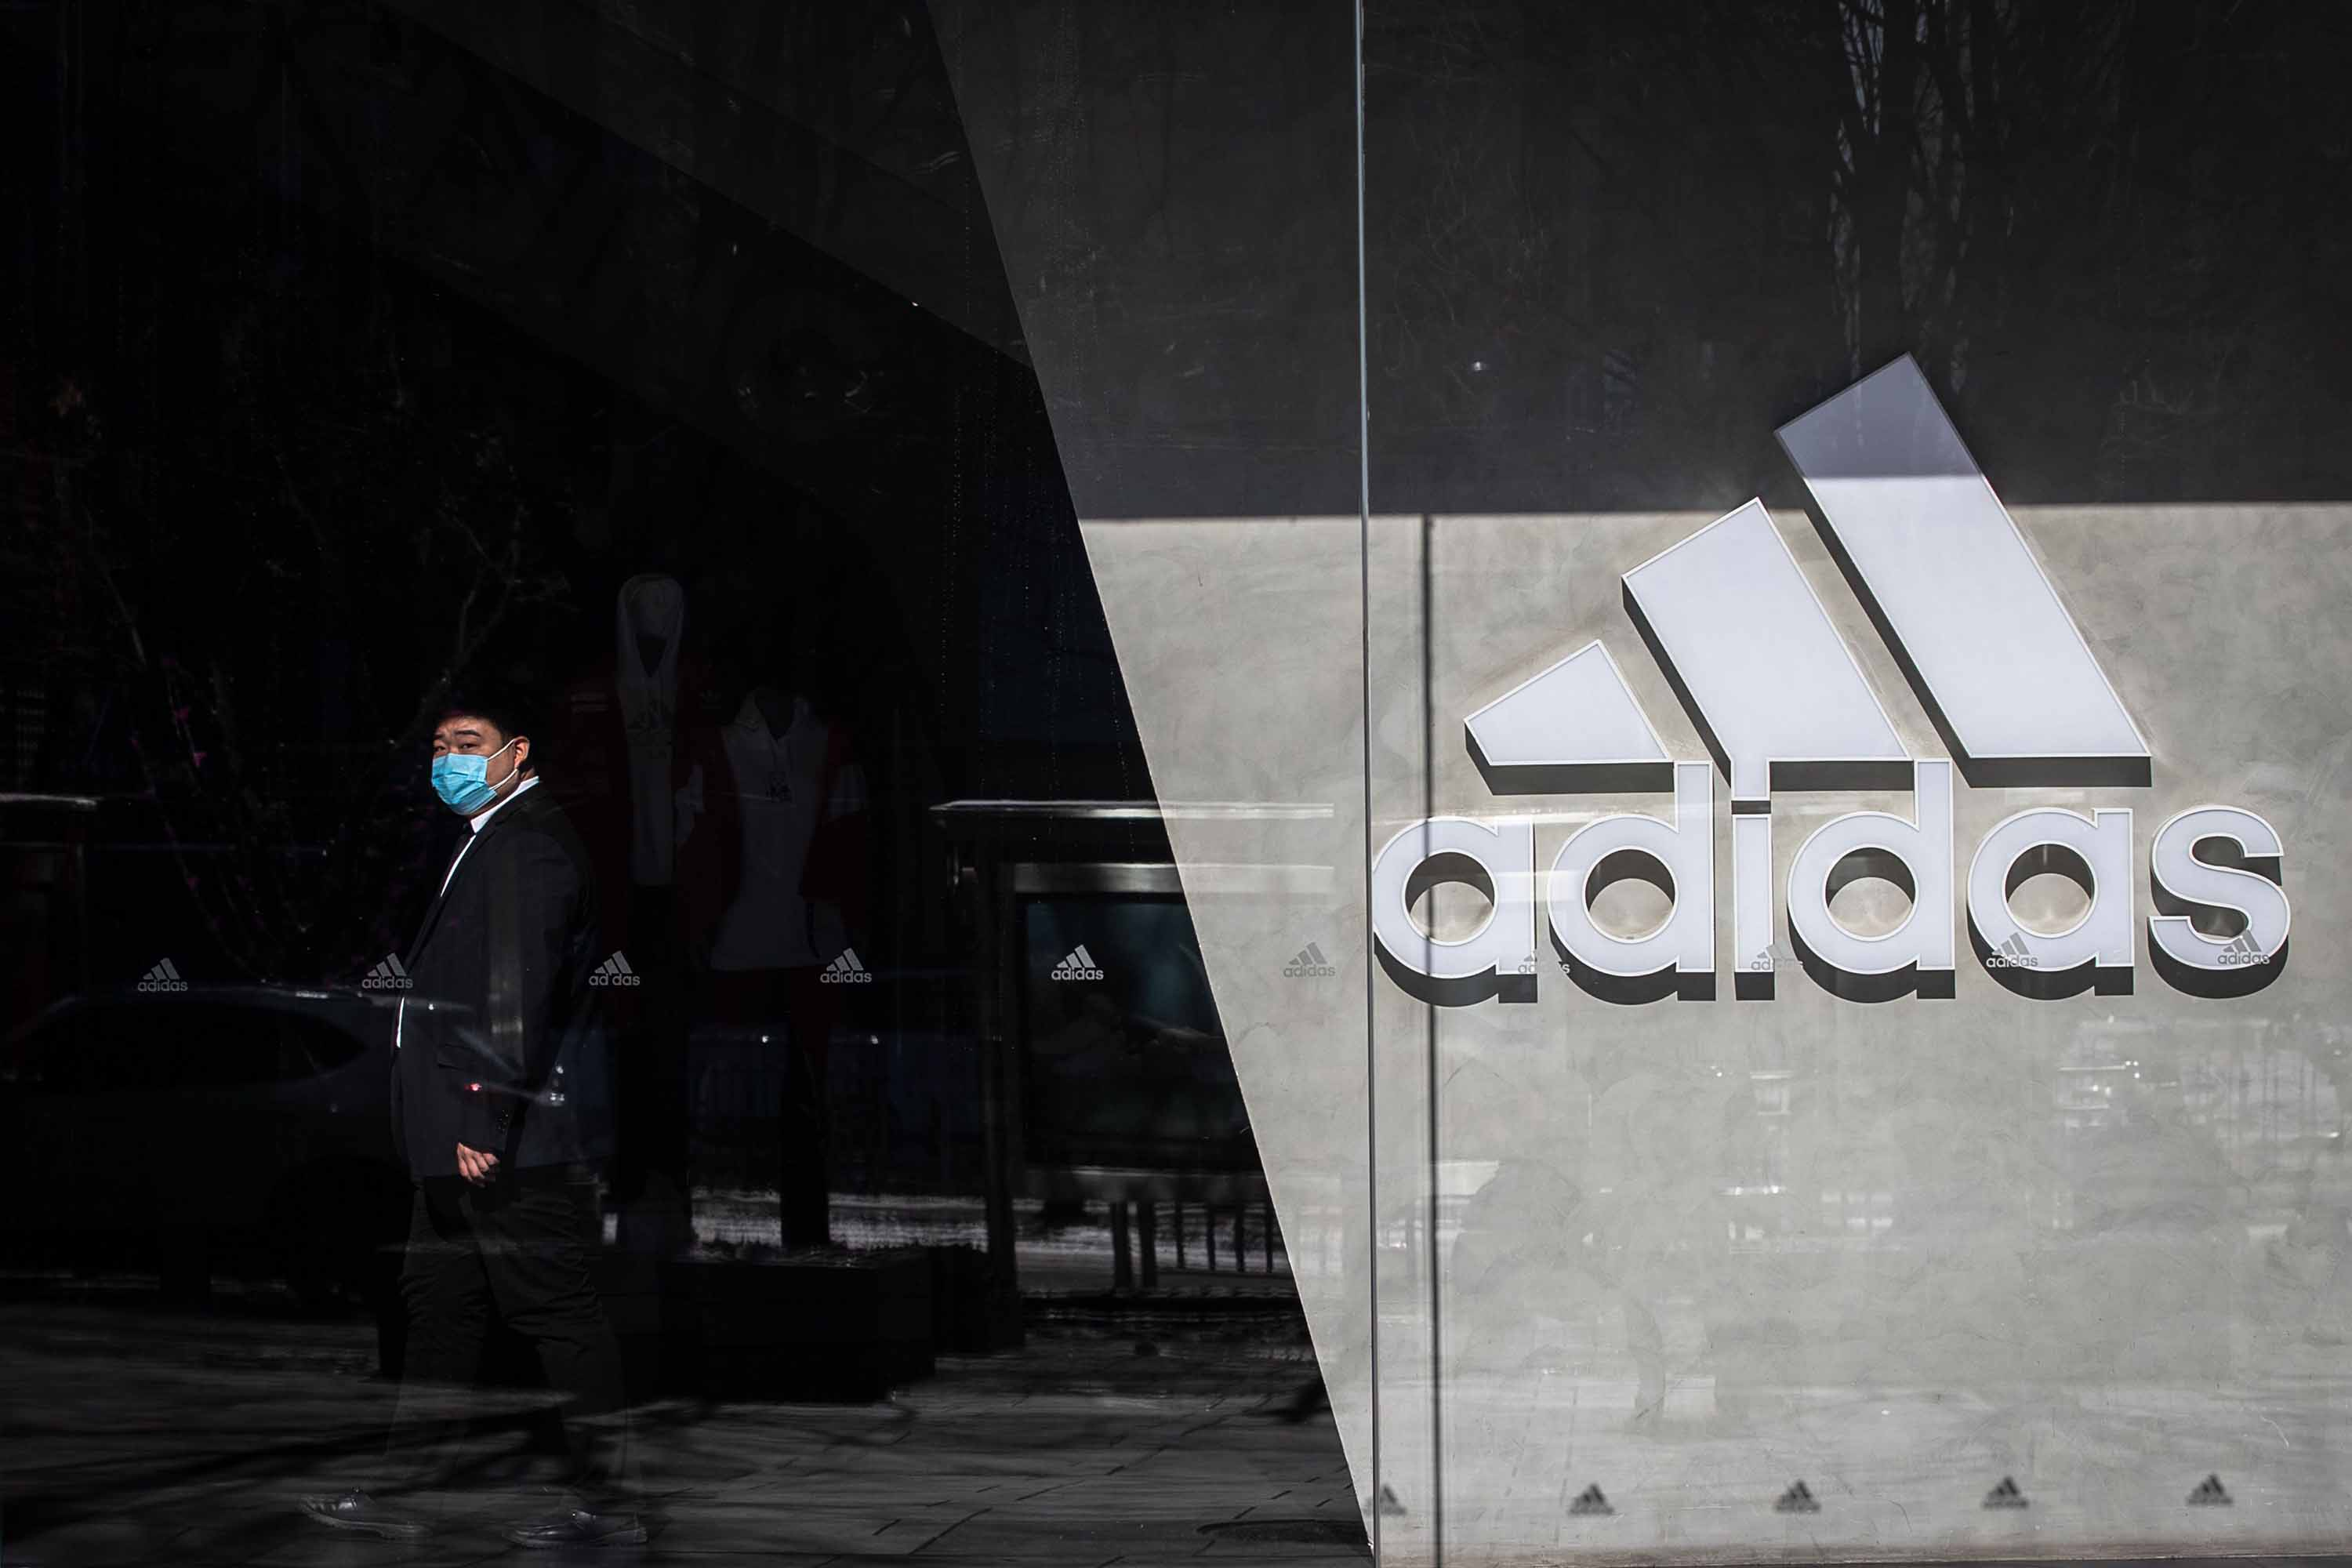 A security guard wearing a protective face mask stands on duty at an Adidas store in Beijing on February 8.